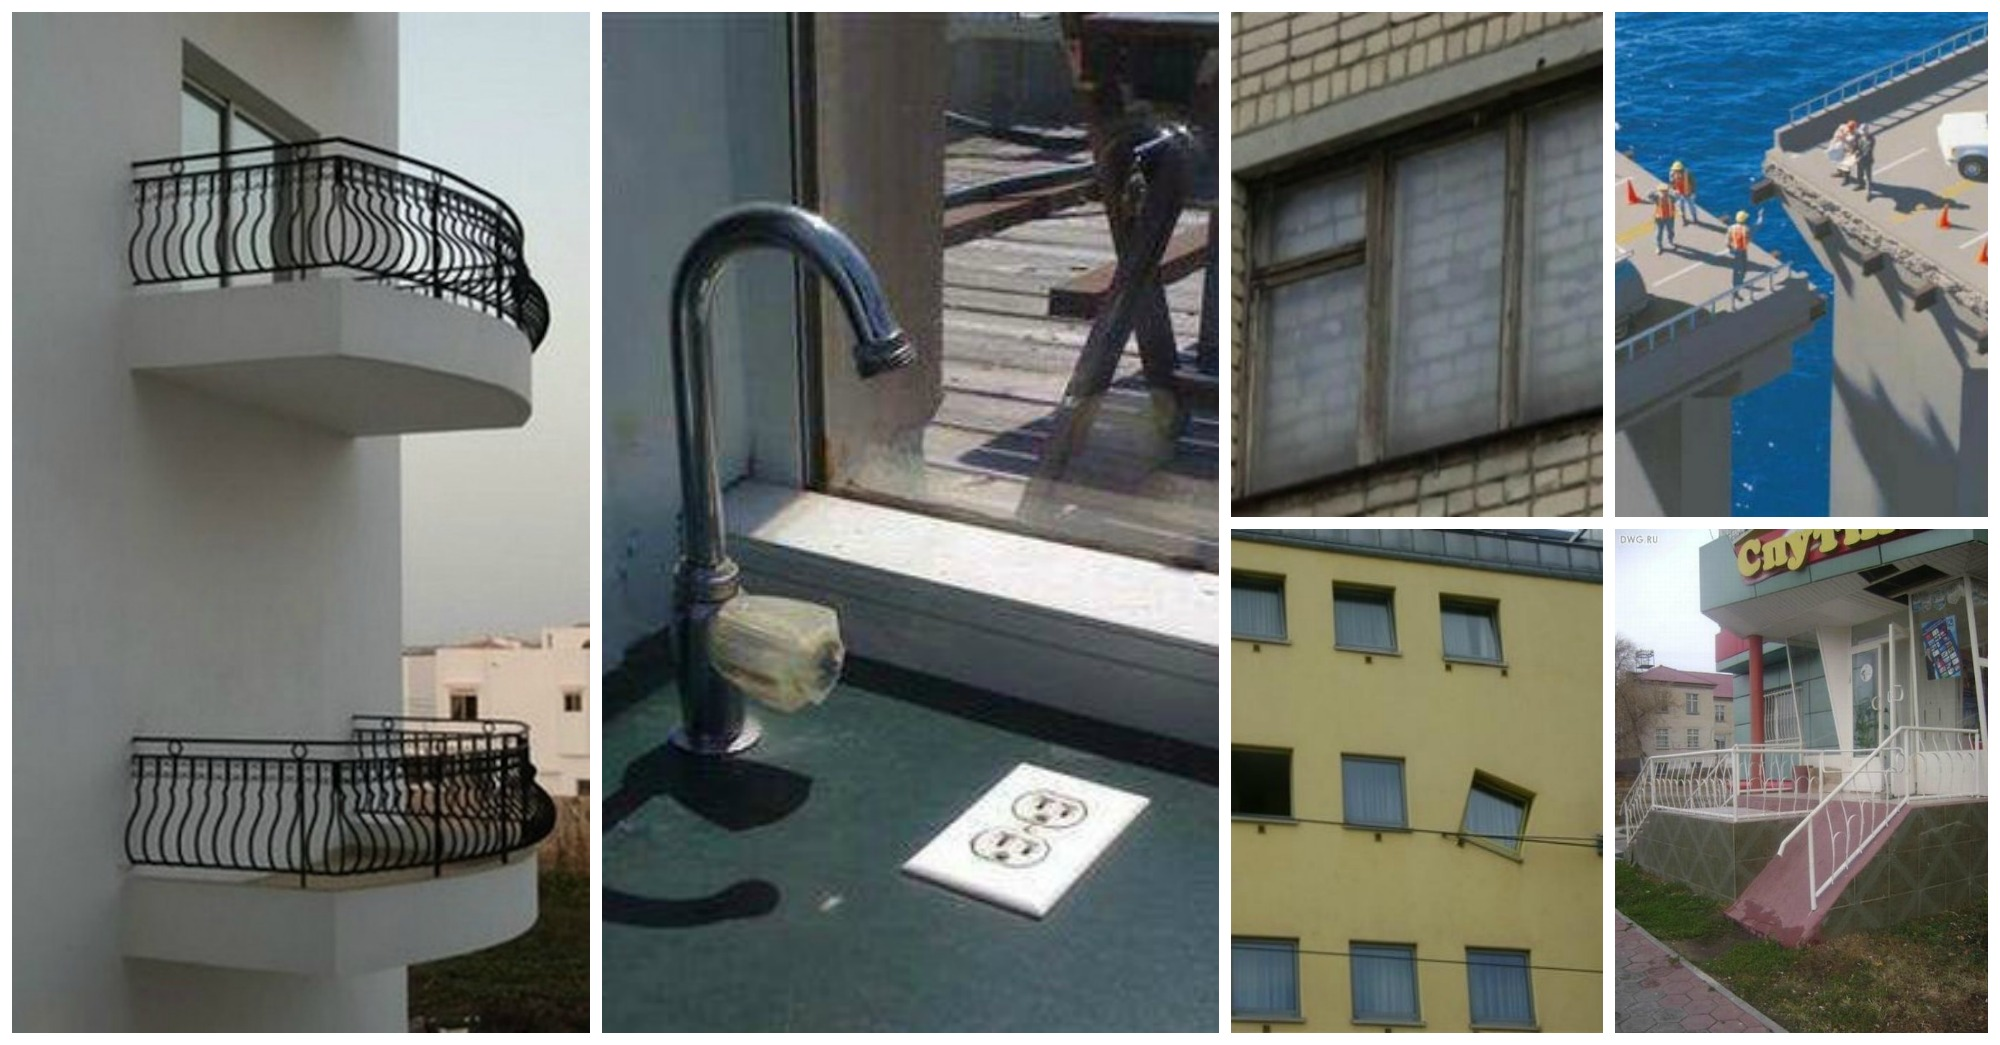 The Most Hilarious Engineering Fails That Will Make You